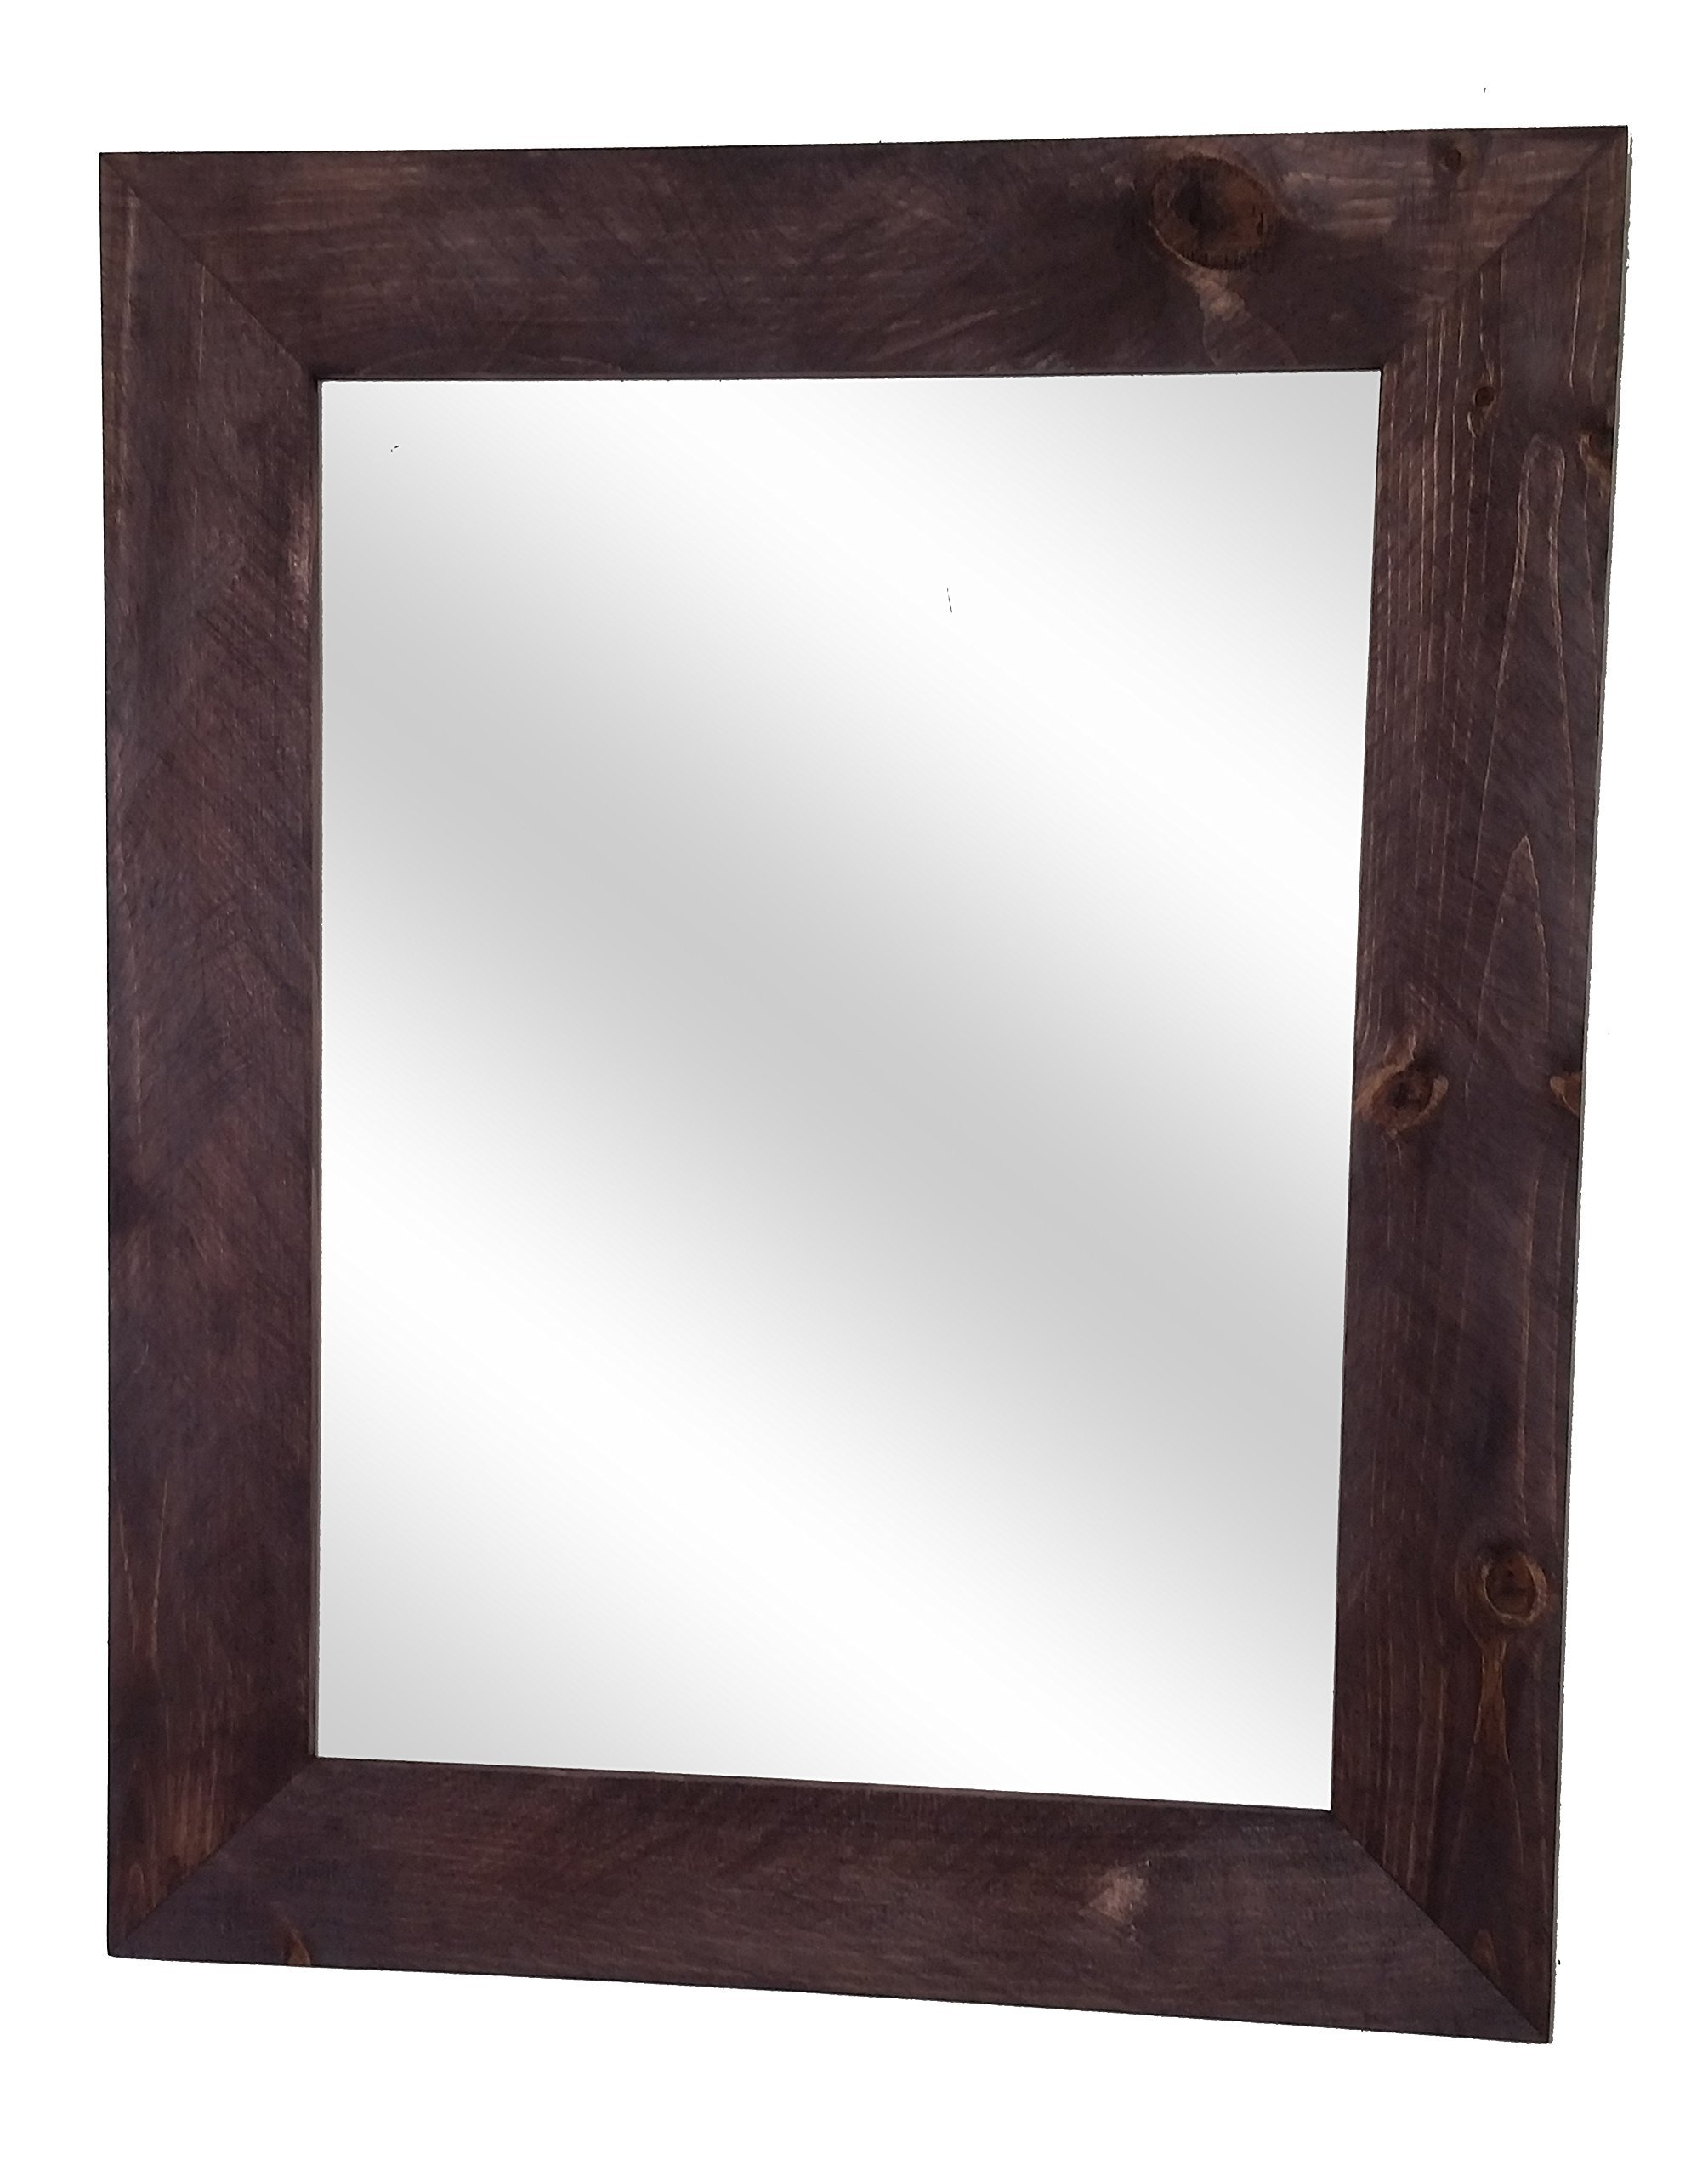 Shiplap Mirror 24 x 30 Vertical Red Mahogany Stain Reclaimed Wood Mirror - Large Wall Mirror - Rustic Modern Home - Home Decor - Mirror - Housewares - Woodwork - Frame by Renewed Decor